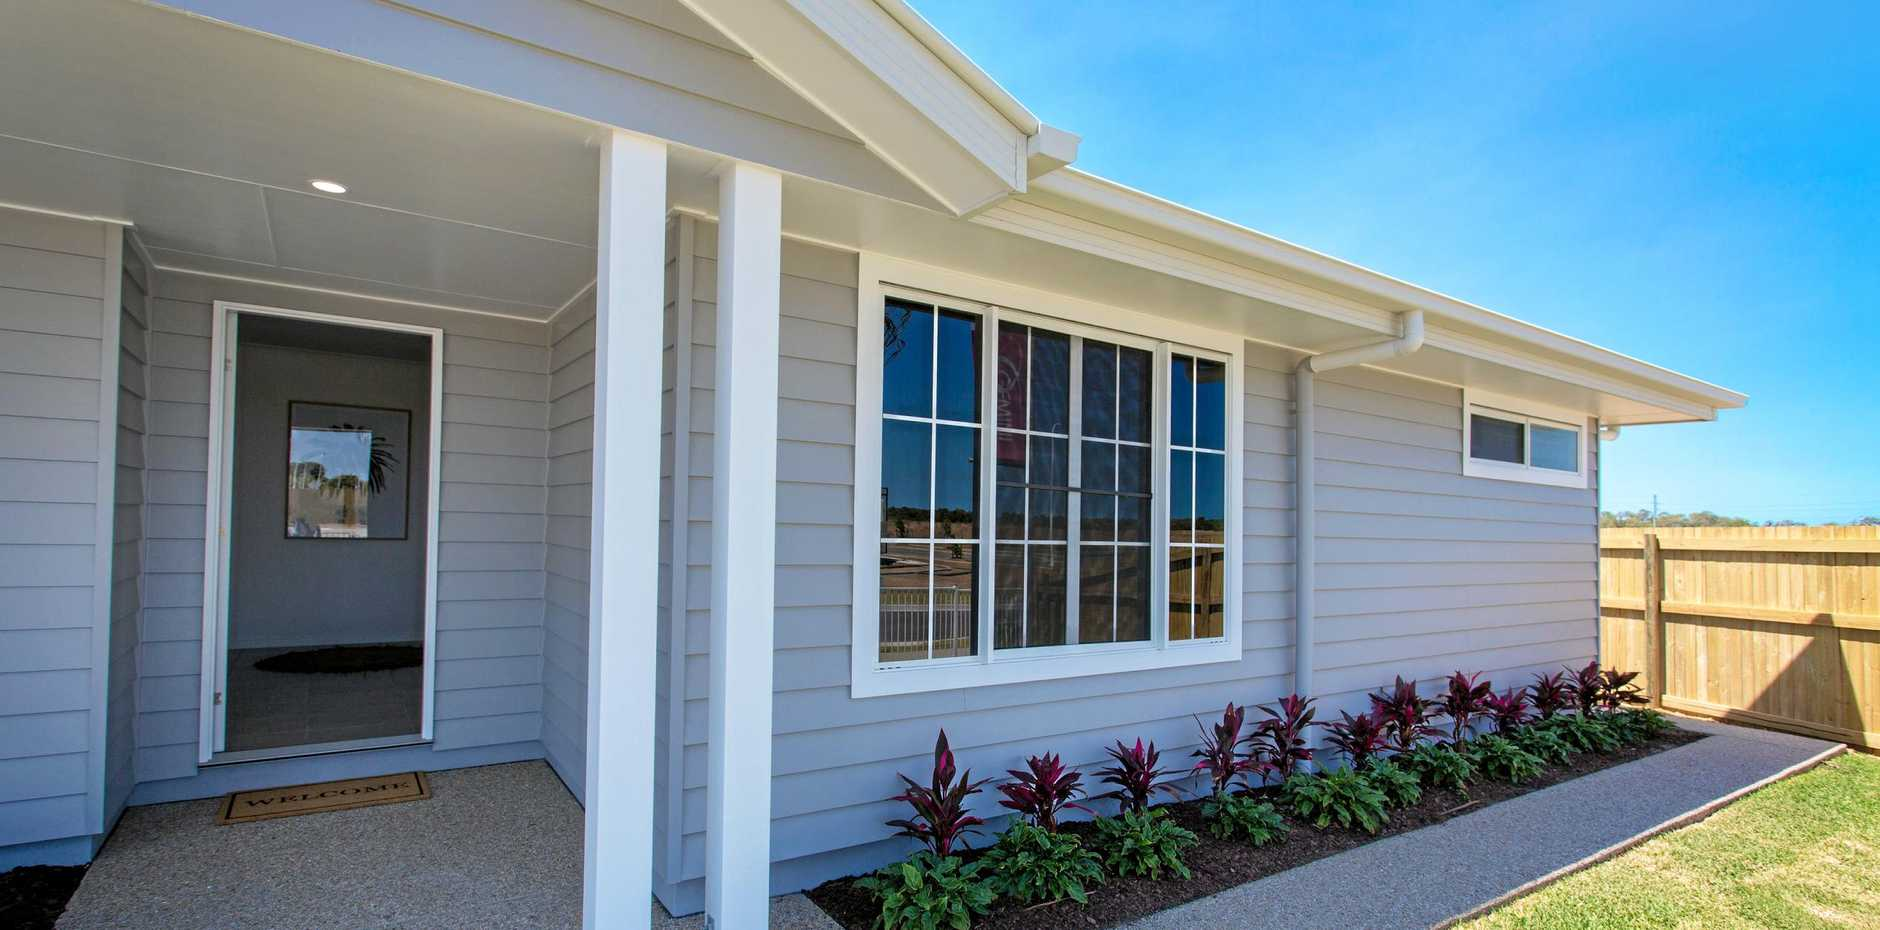 Gemini Homes won the catagory, Display Home $251,000- $350,000, at the Master Builders Housing & Construction Awards 2019 for the entry, The Panama 210, at Plantation Plams Estate.